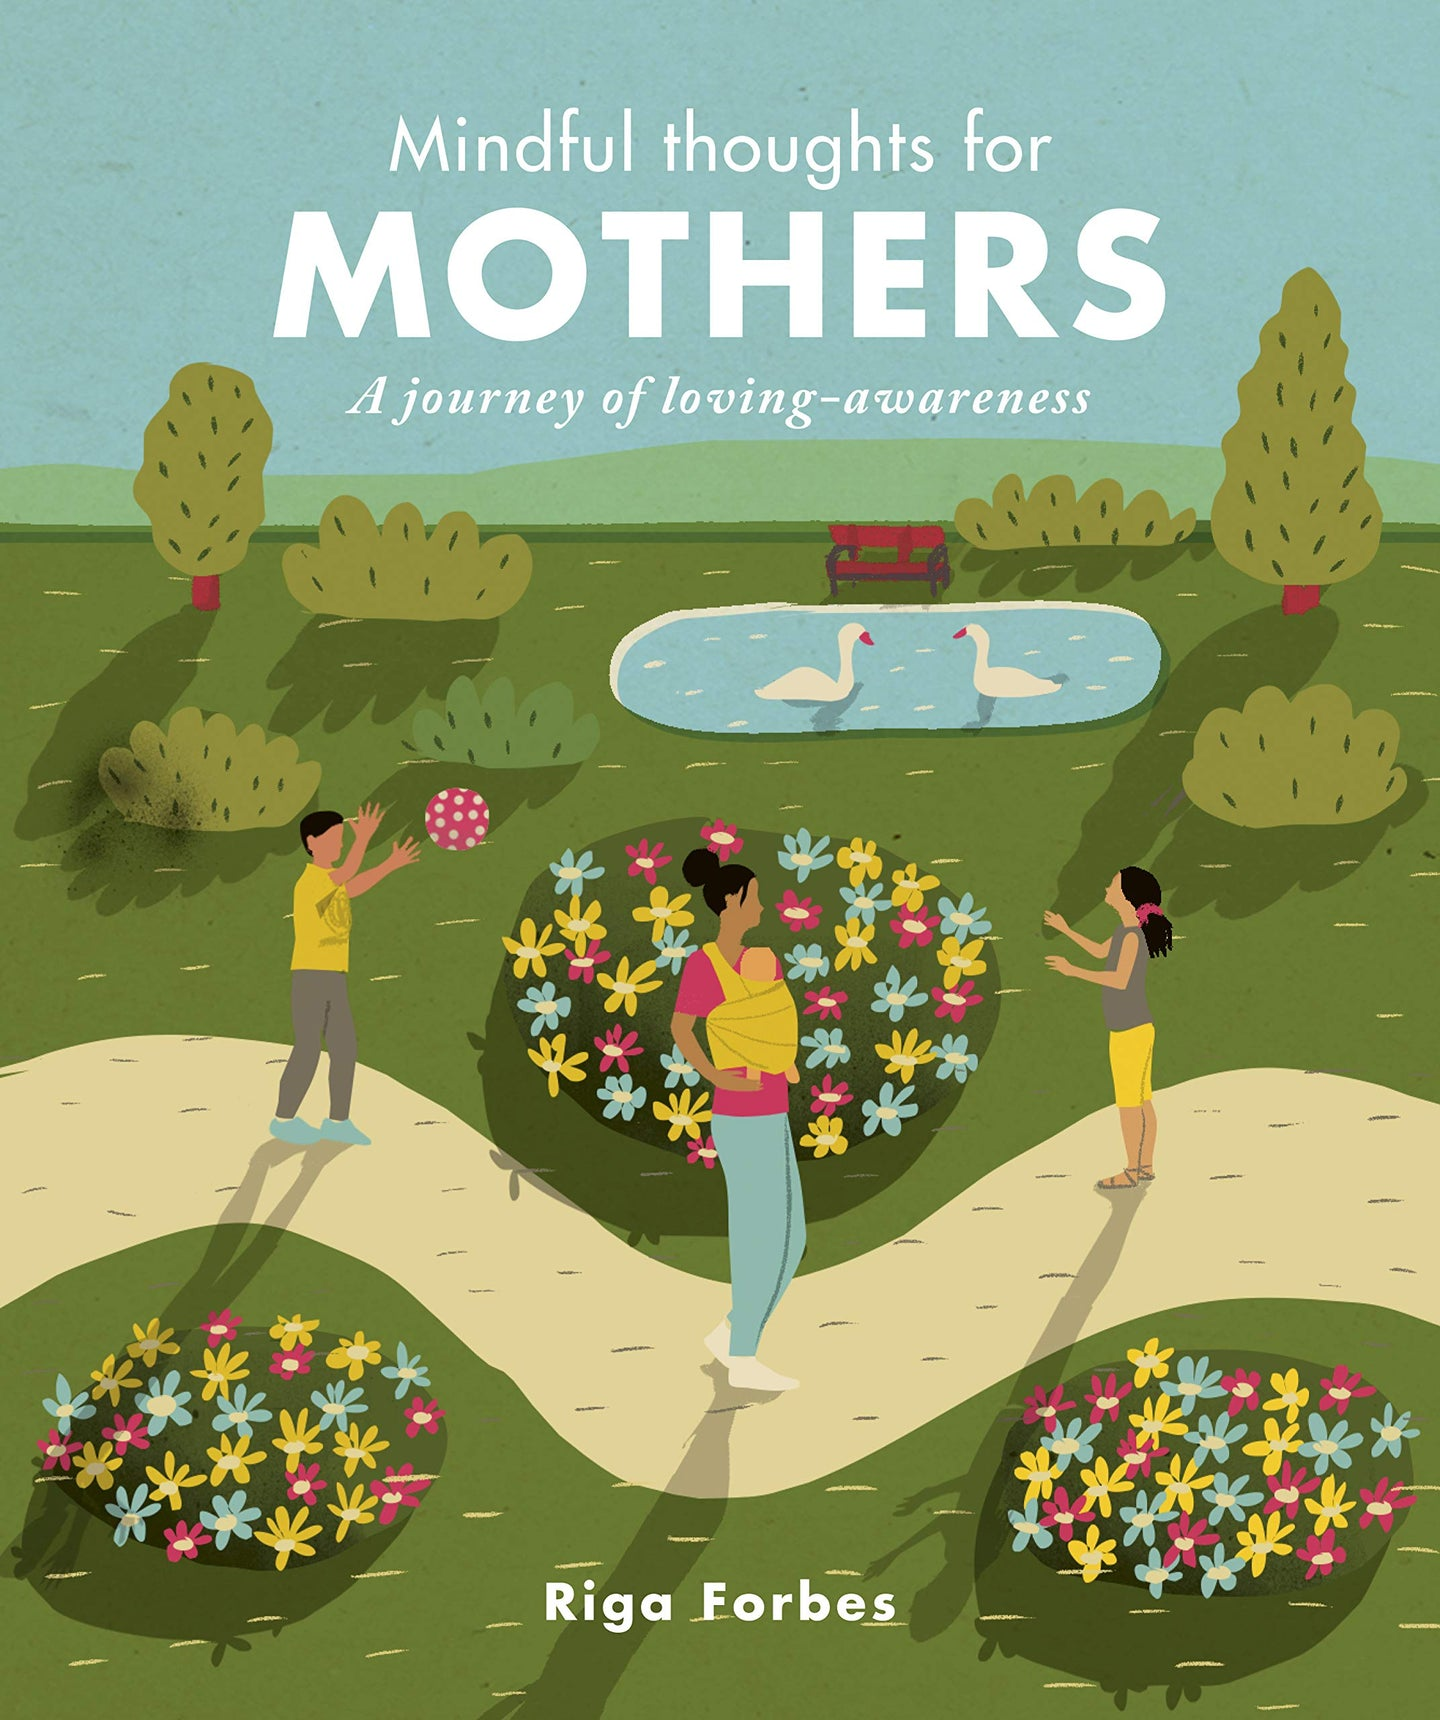 'Mindful Thoughts for Mothers' by Riga Forbes